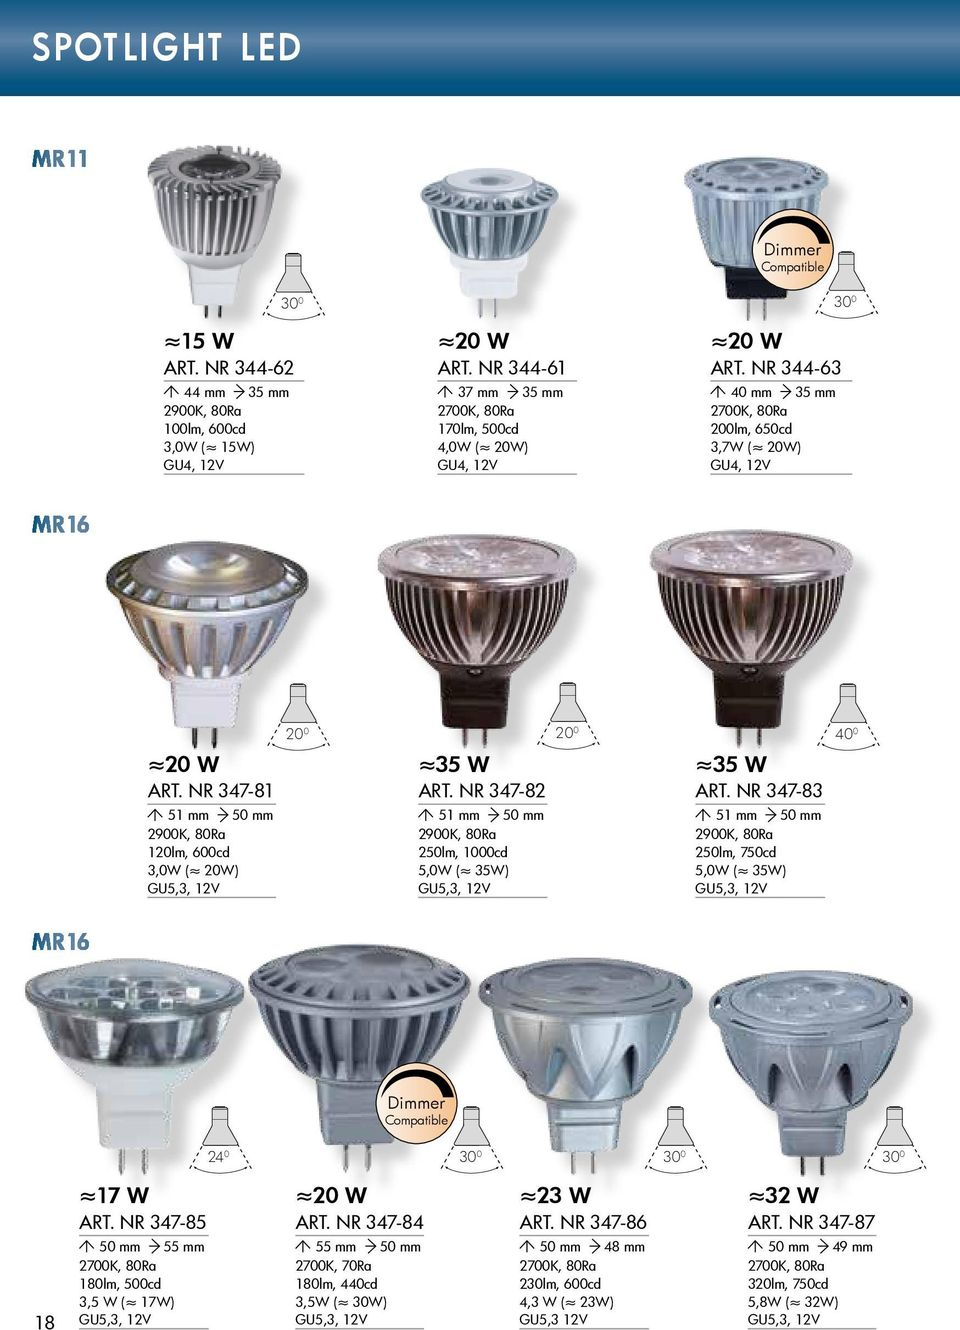 NR 347-82 51 mm 50 mm 250lm, 1000cd 5,0W ( 35W) GU5,3, 12V 35 W ART. NR 347-83 51 mm 50 mm 250lm, 750cd 5,0W ( 35W) GU5,3, 12V MR 16 24 0 30 0 30 0 30 0 18 17 W ART.